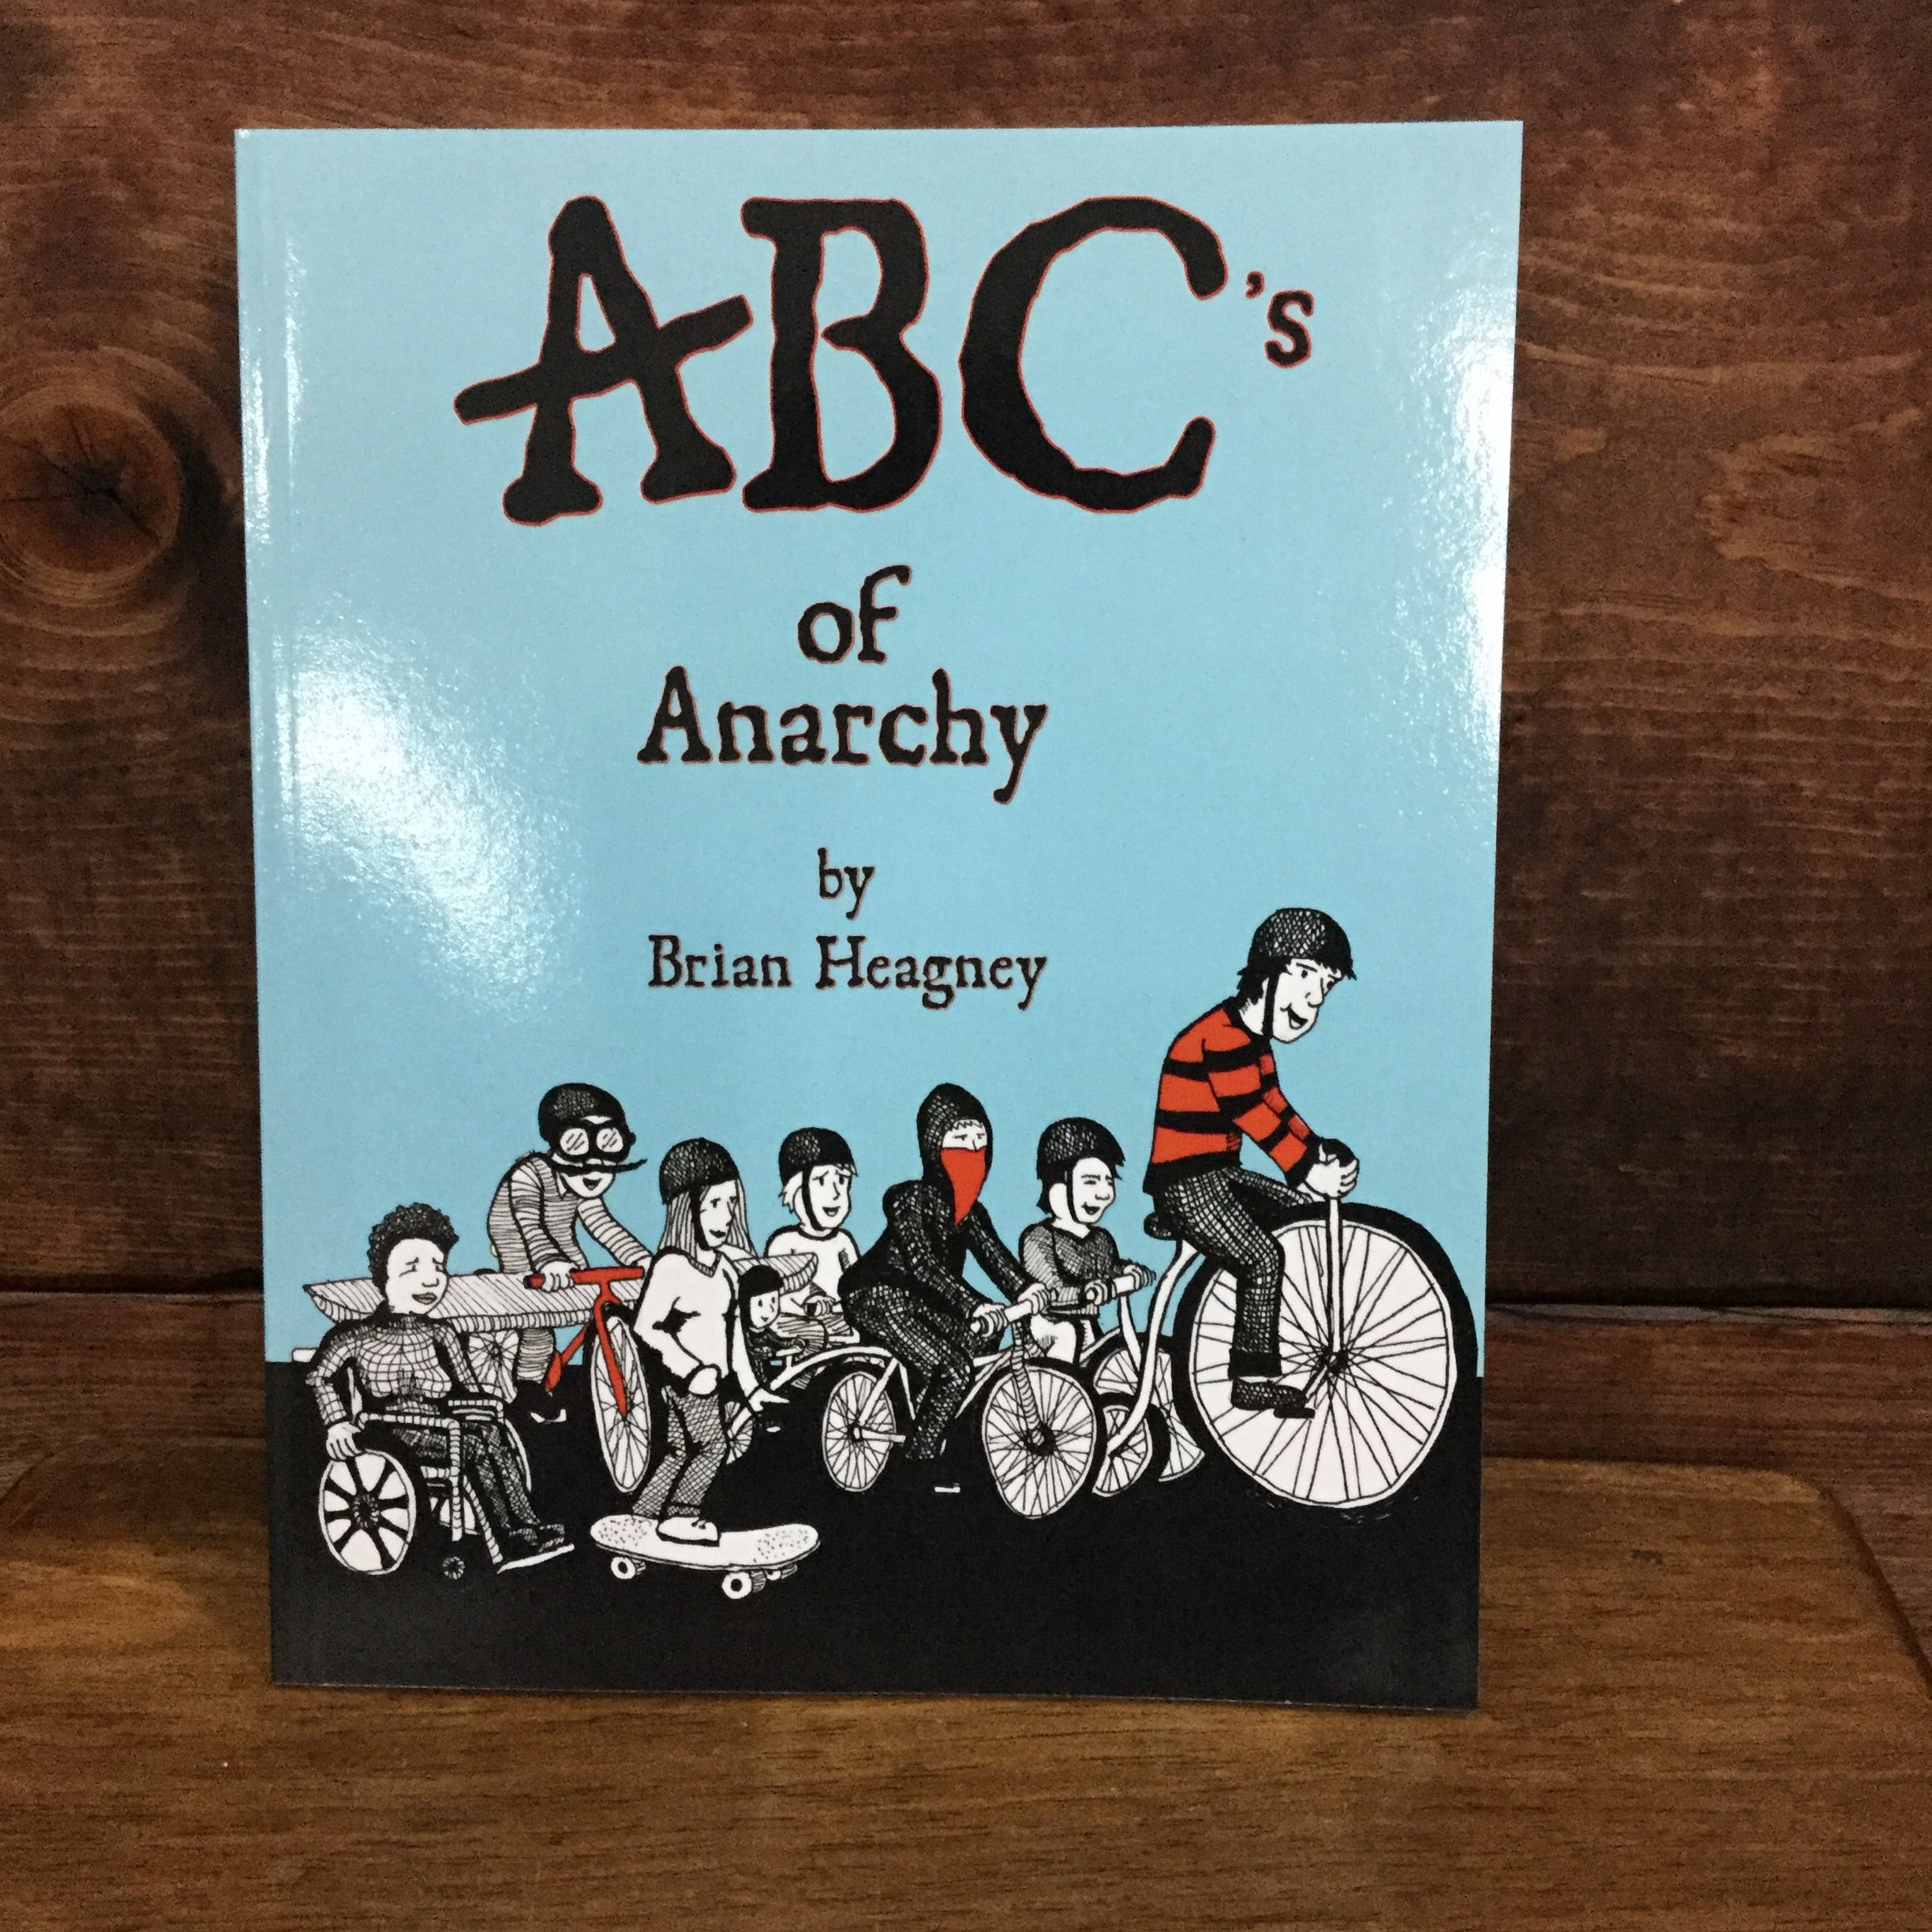 ABC's of Anarchy | AK PRESS | Chico,CA at Sustain - Gallery and Shop - Chicago, IL